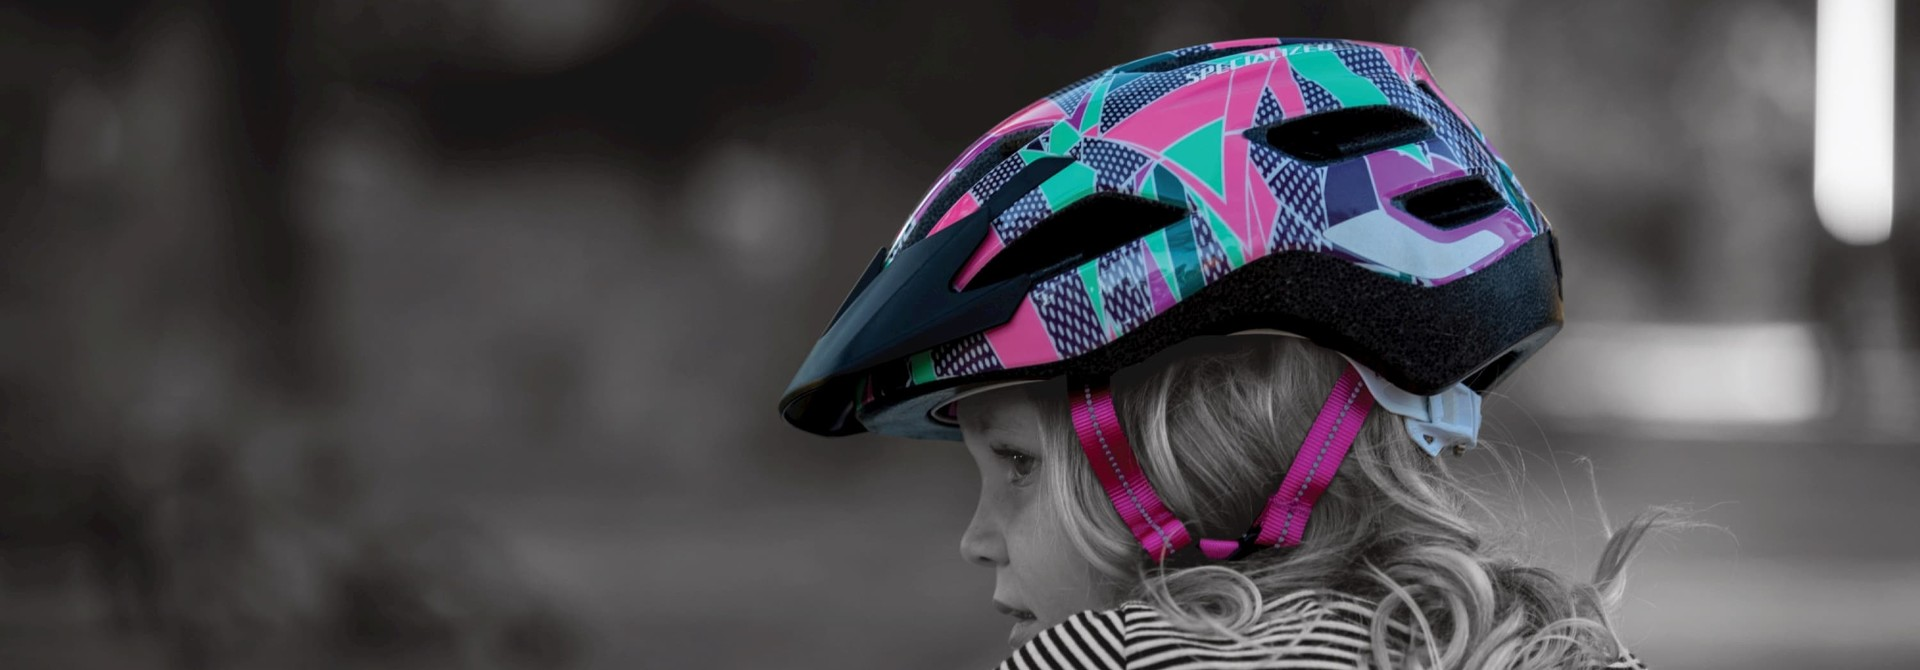 BIKE HELMETS FOR KIDS